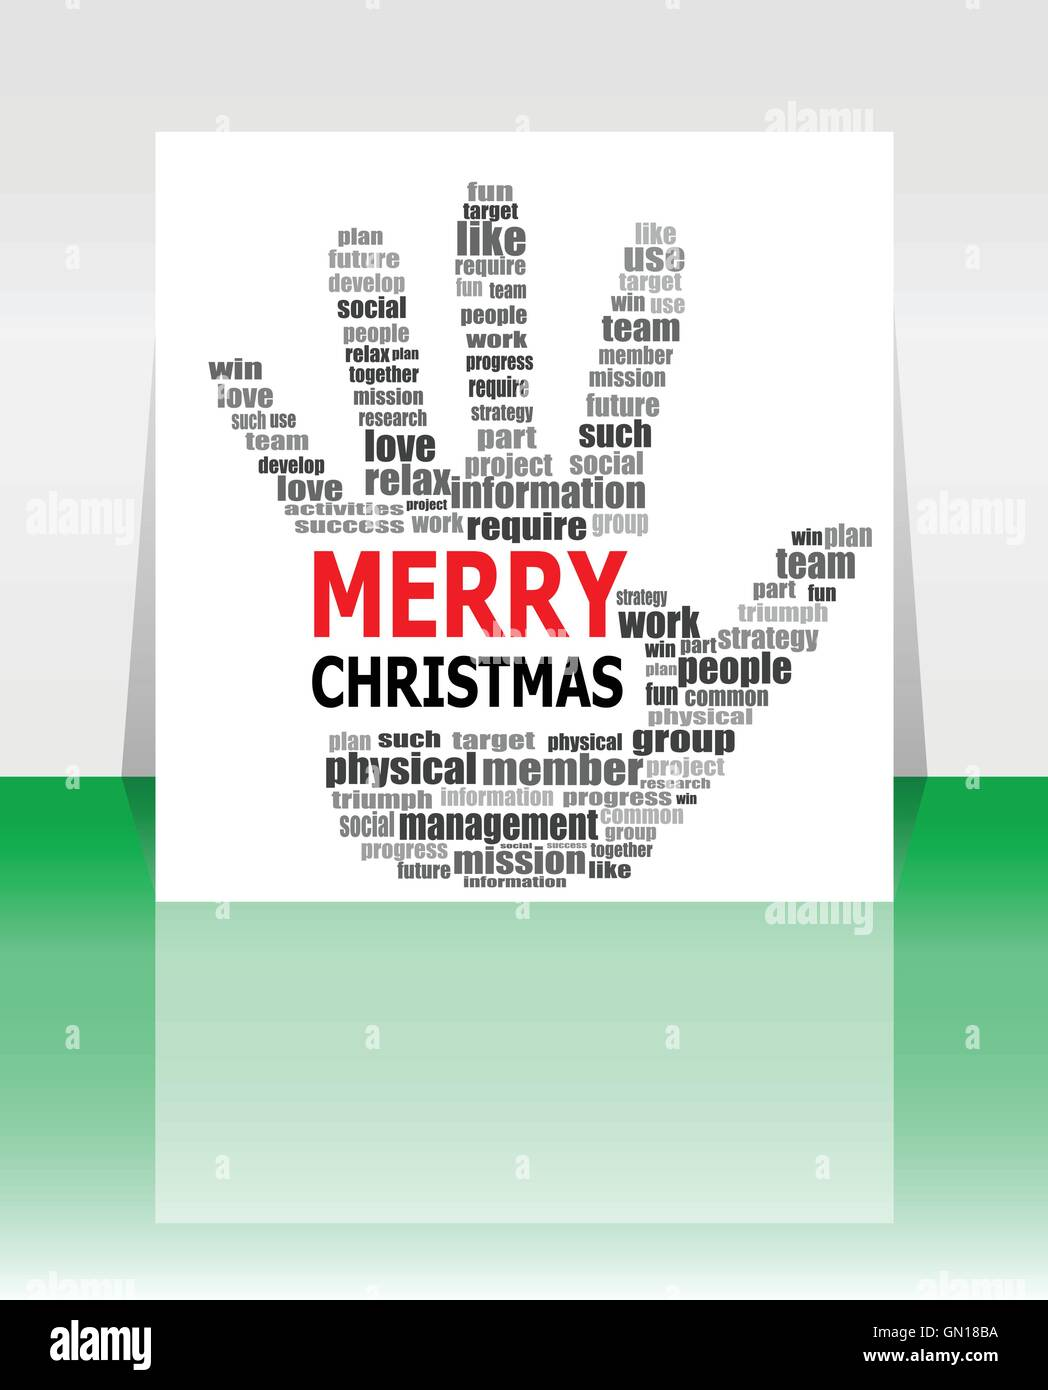 merry christmas unique xmas design element great design element for congratulation cards banners and flyers happy new year